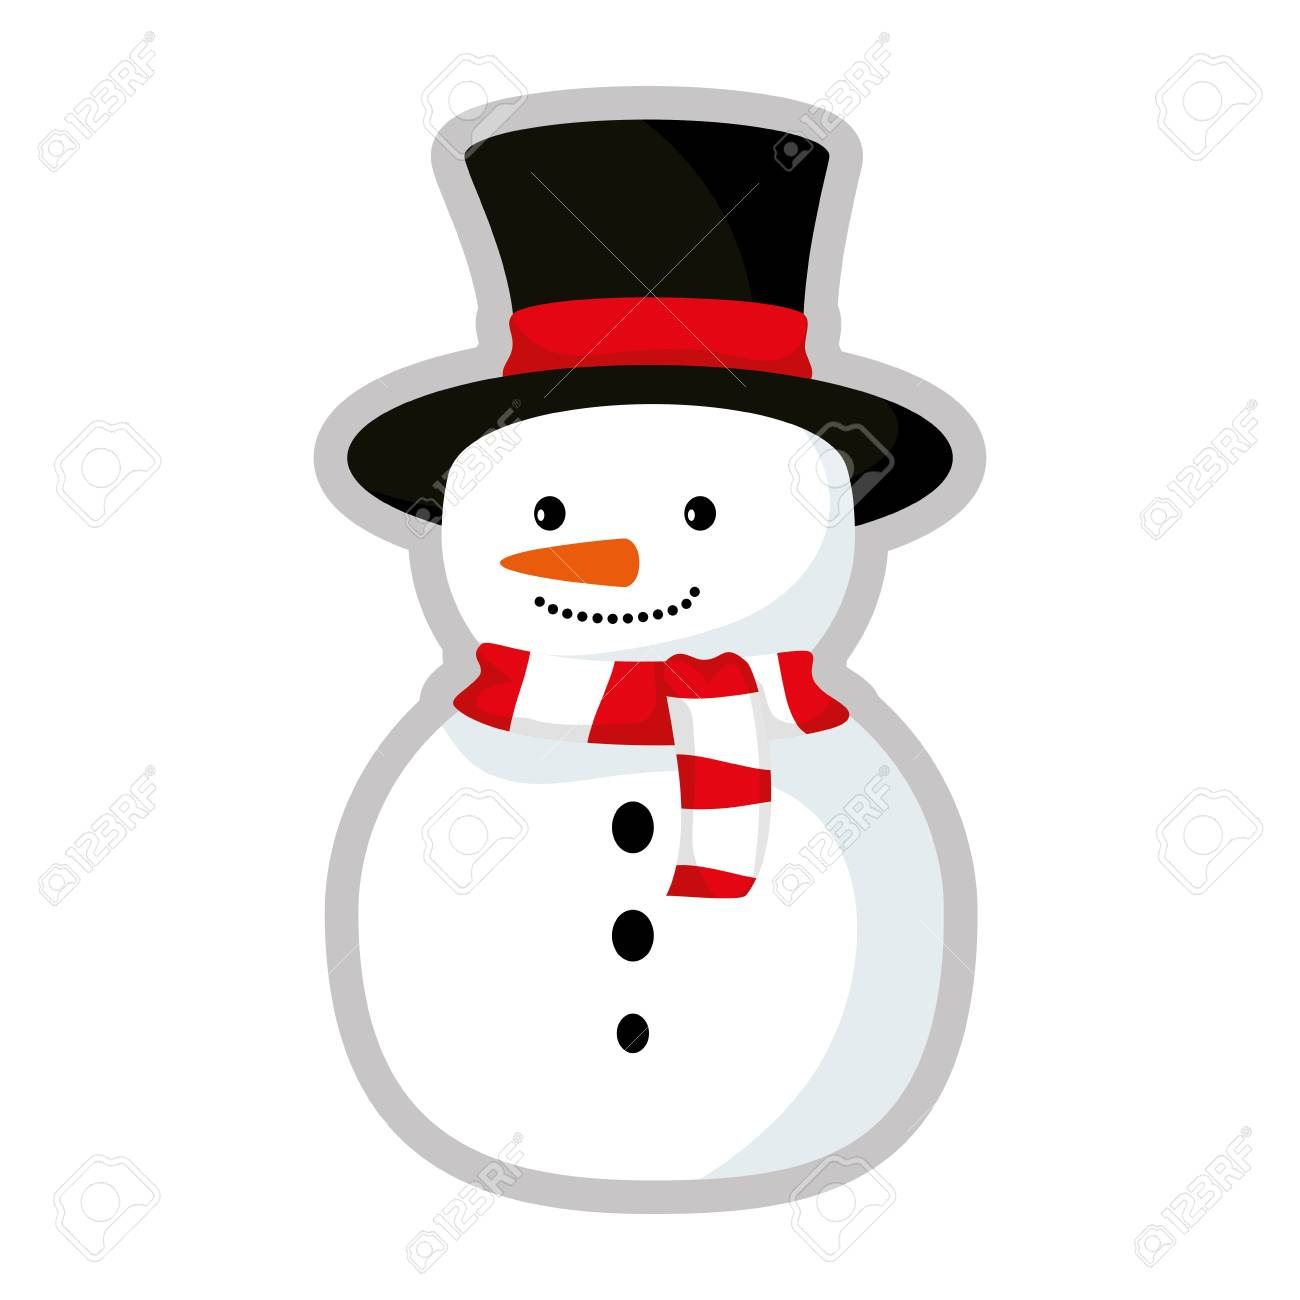 Cute Snowman Christmas Character Vector Illustration Design Royalty Free Cliparts Vectors And Stock Illustration Image 111072254